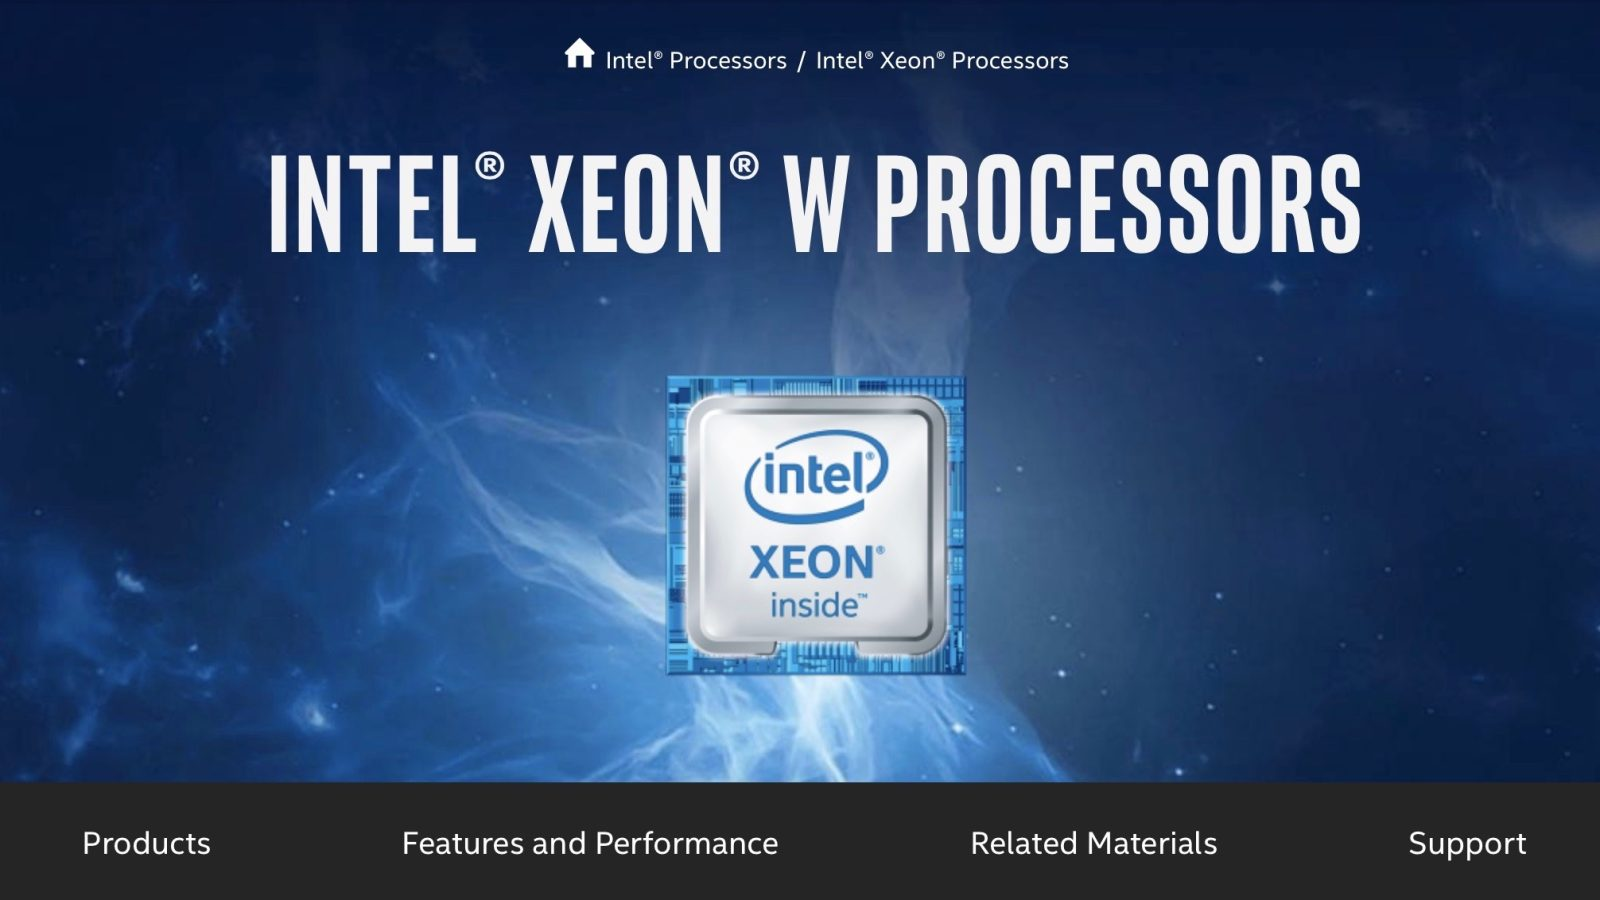 Intel announces new workstation focused Xeon W processors - 9to5Mac